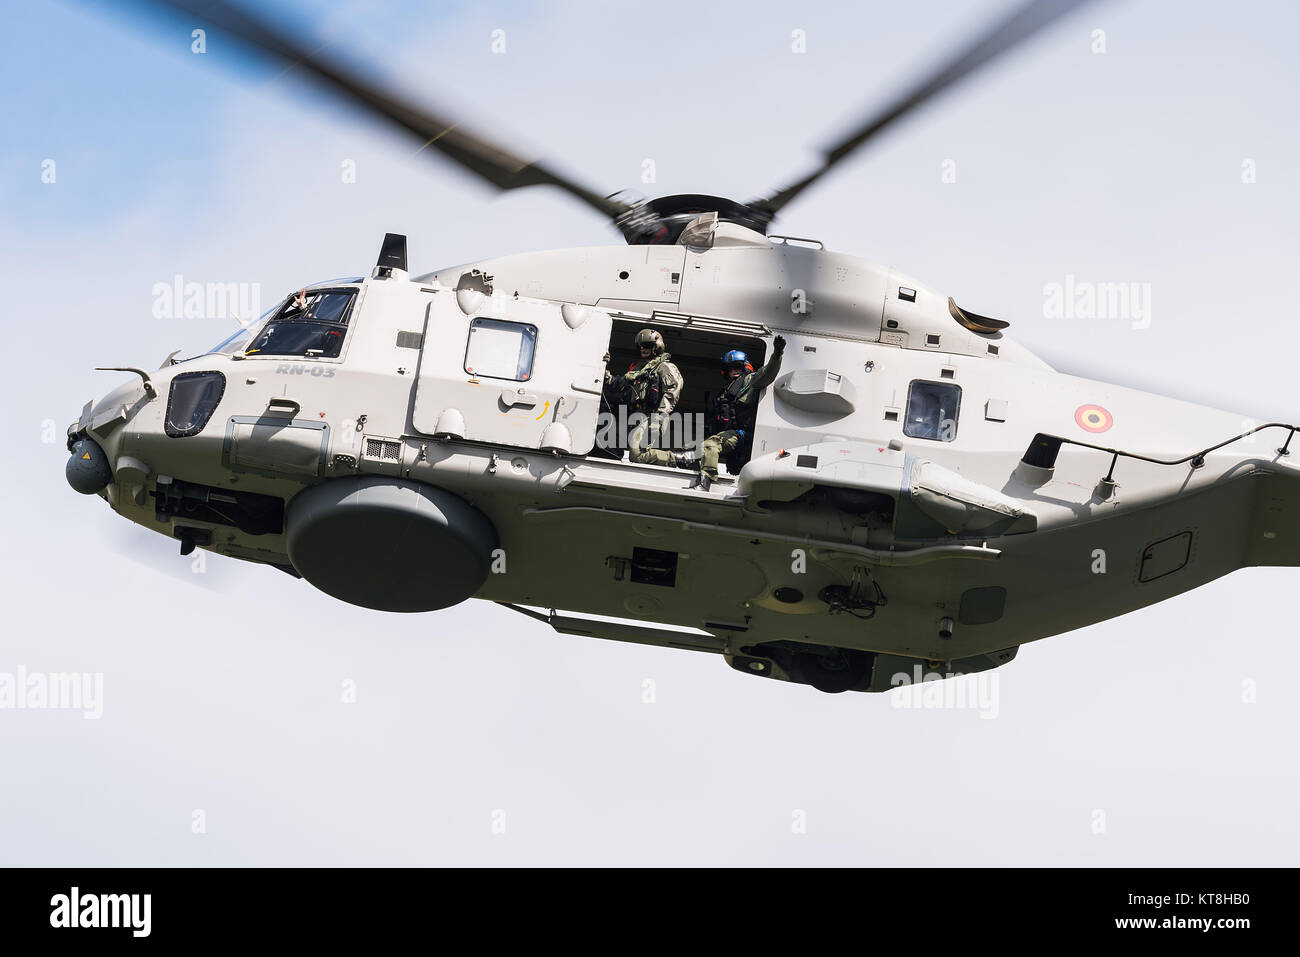 A NH90 NFH rescue helicopter of the Belgian Air Force. - Stock Image